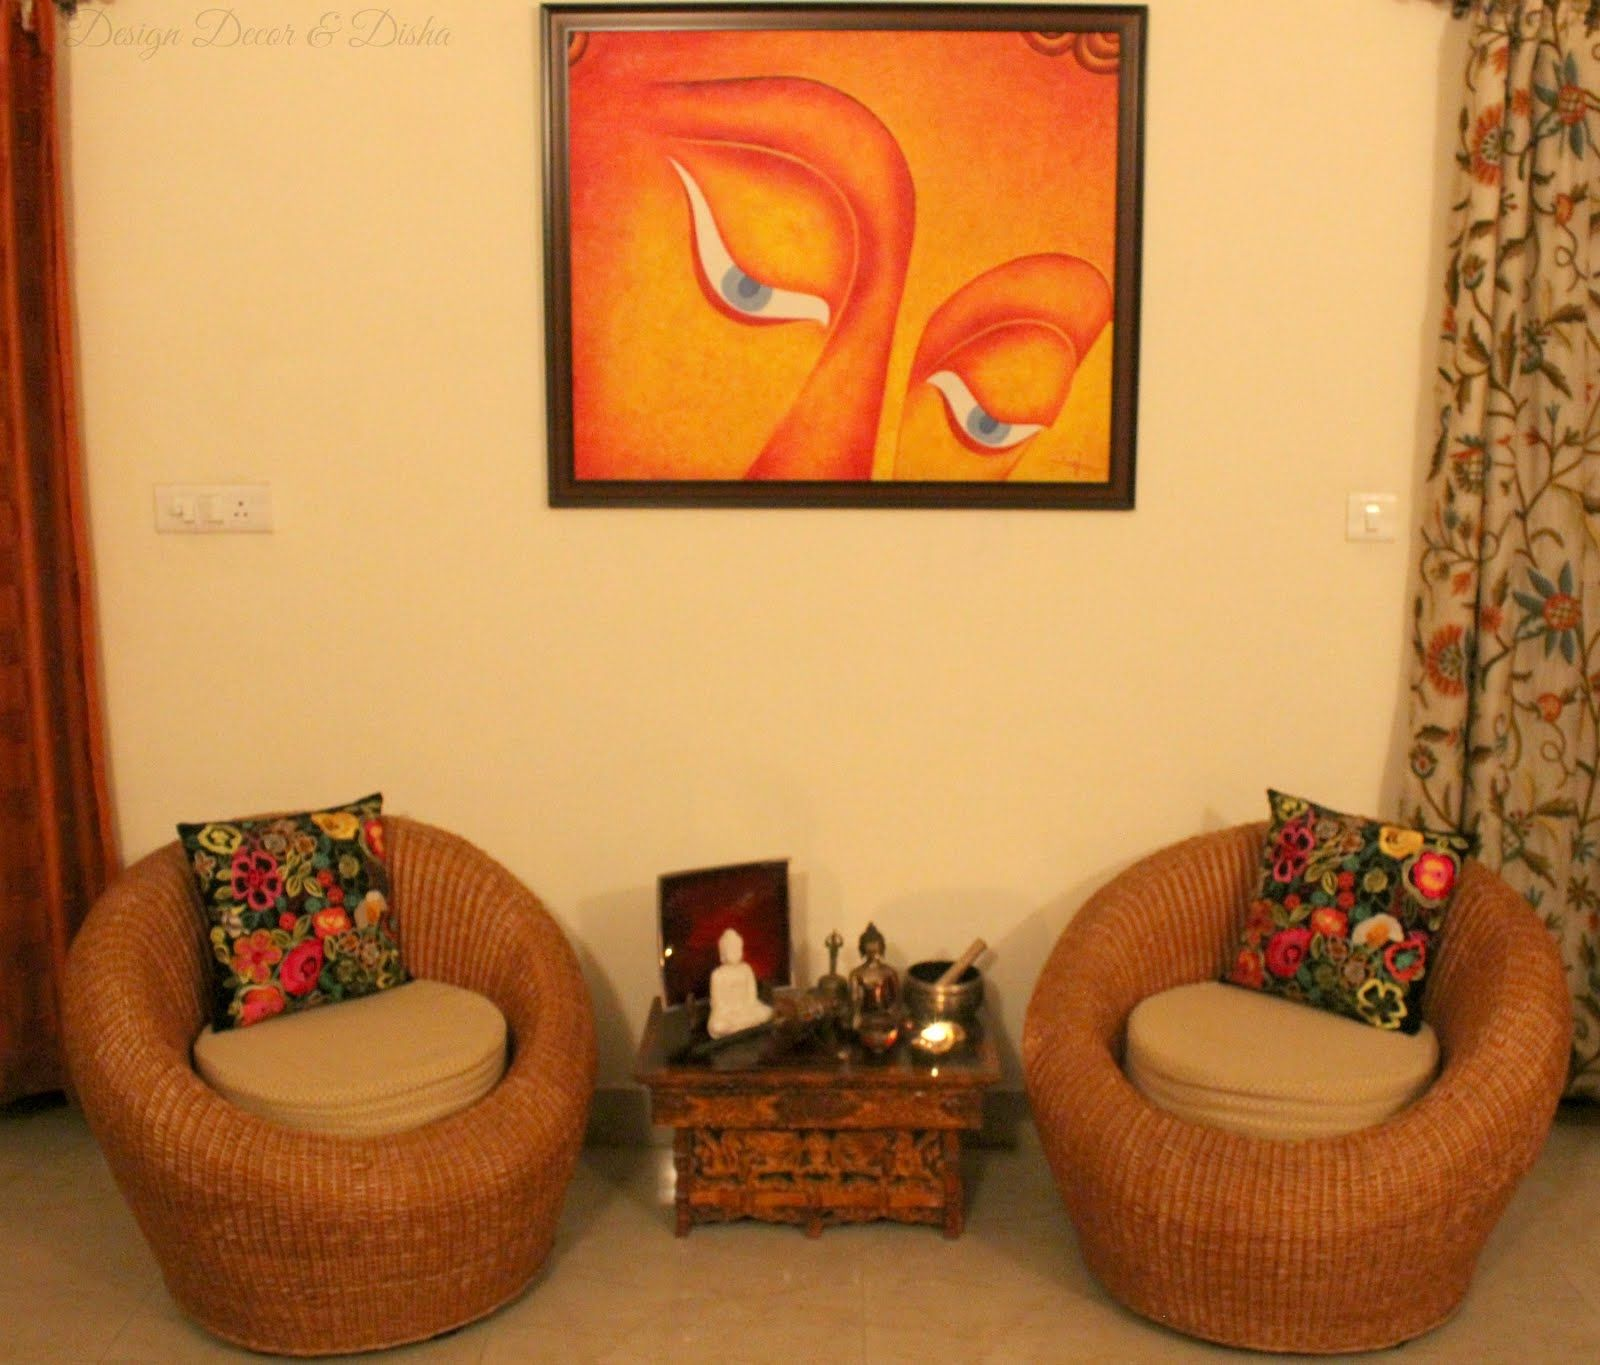 Superb Indian Home Decor Ideas Part - 8: Indian+Home+Decor+Ideas.jpg (1600×1365)   Wall Decor   Pinterest   Wall  Decor And Walls